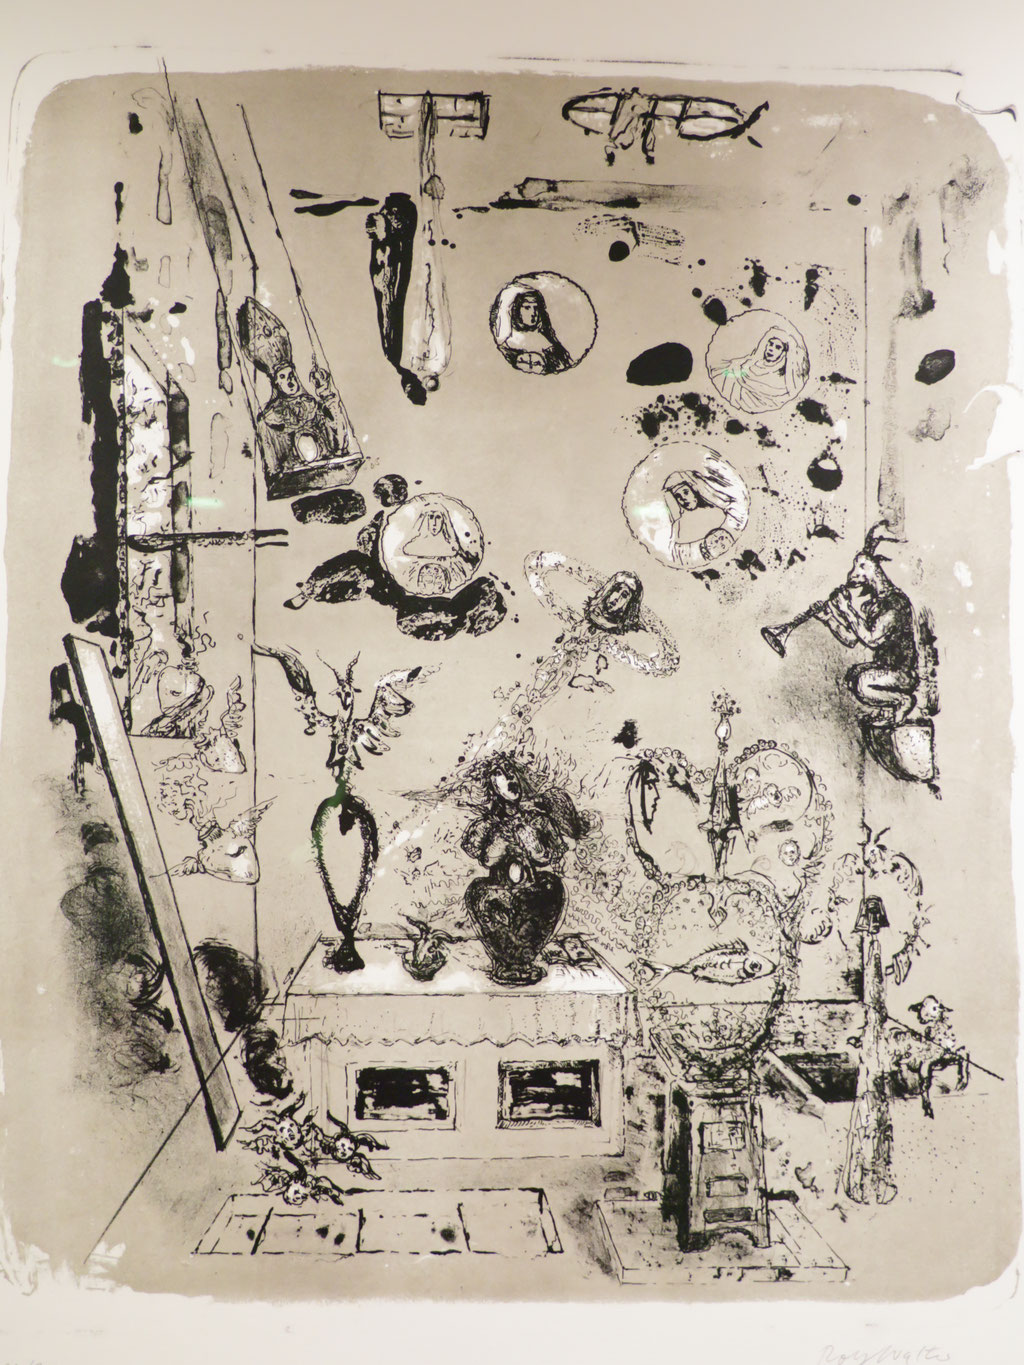 Madaillons 1991, Lithographie, 58 x 47,5 cm